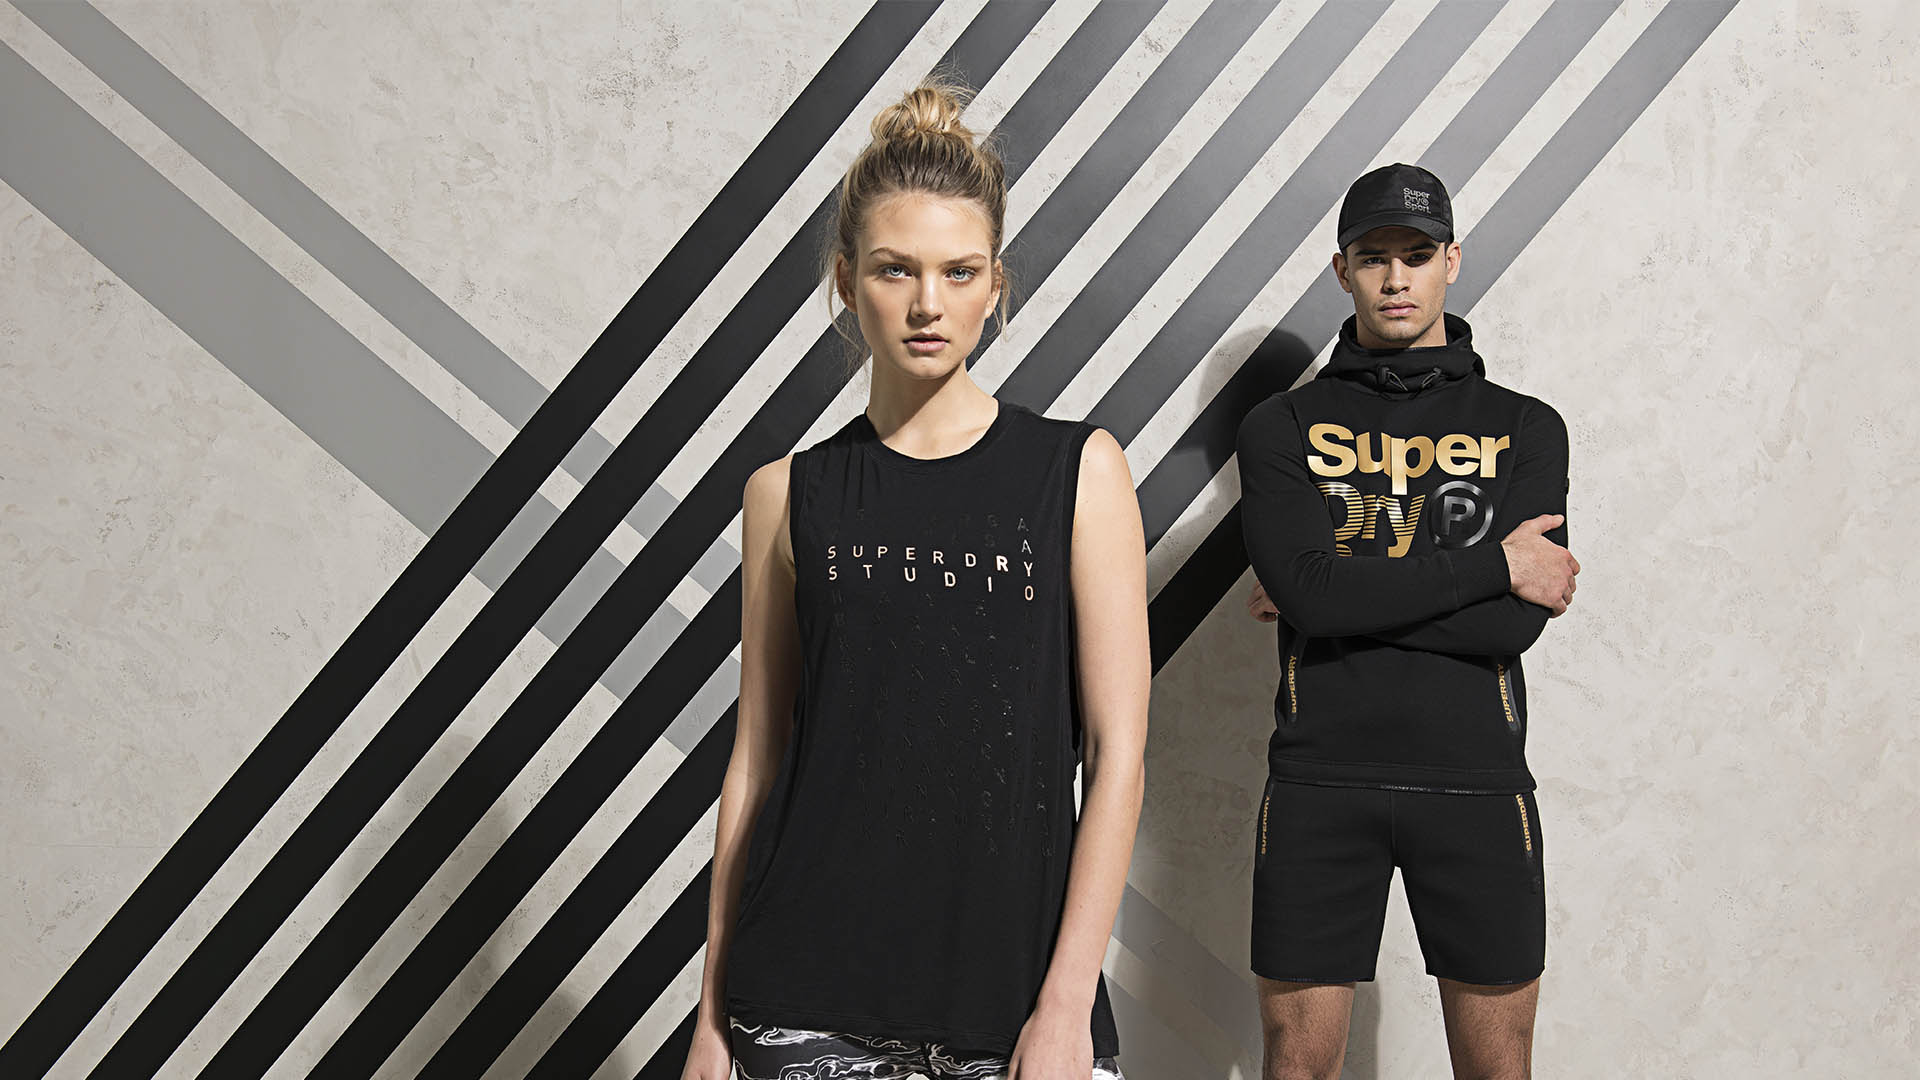 black-superdry-sport-clothing.jpg